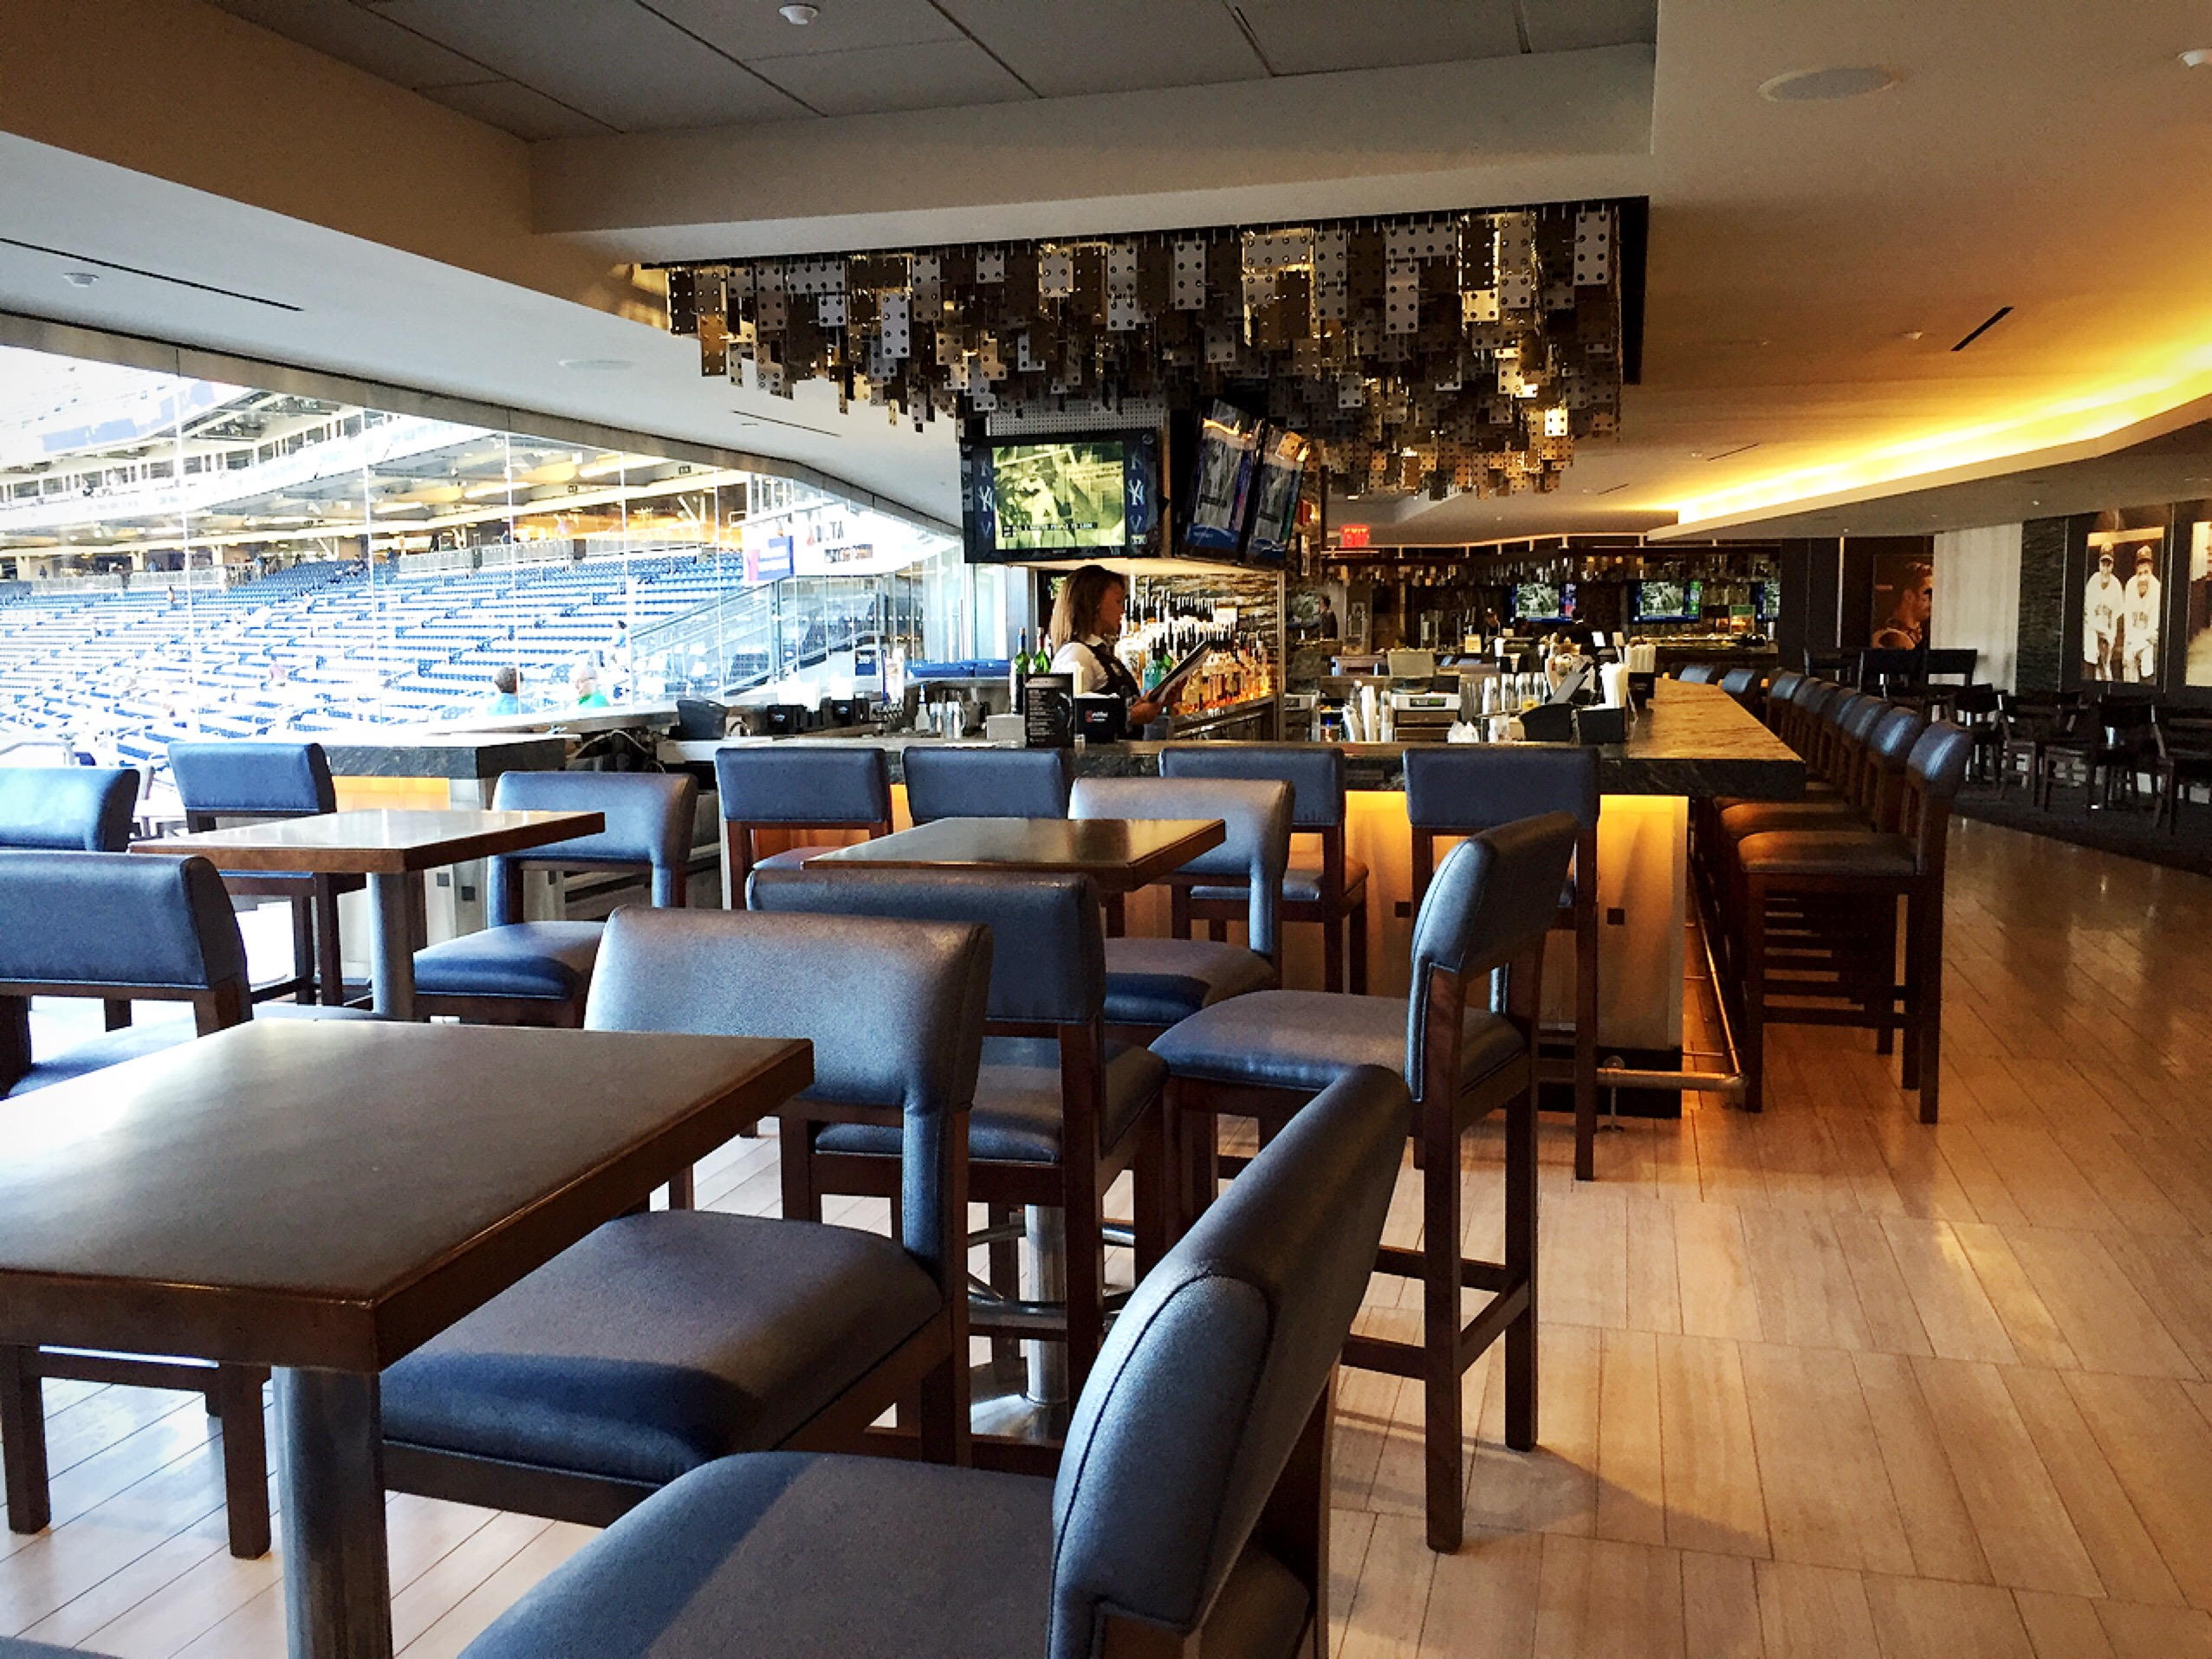 「new yankee stadium vip lounge」の画像検索結果